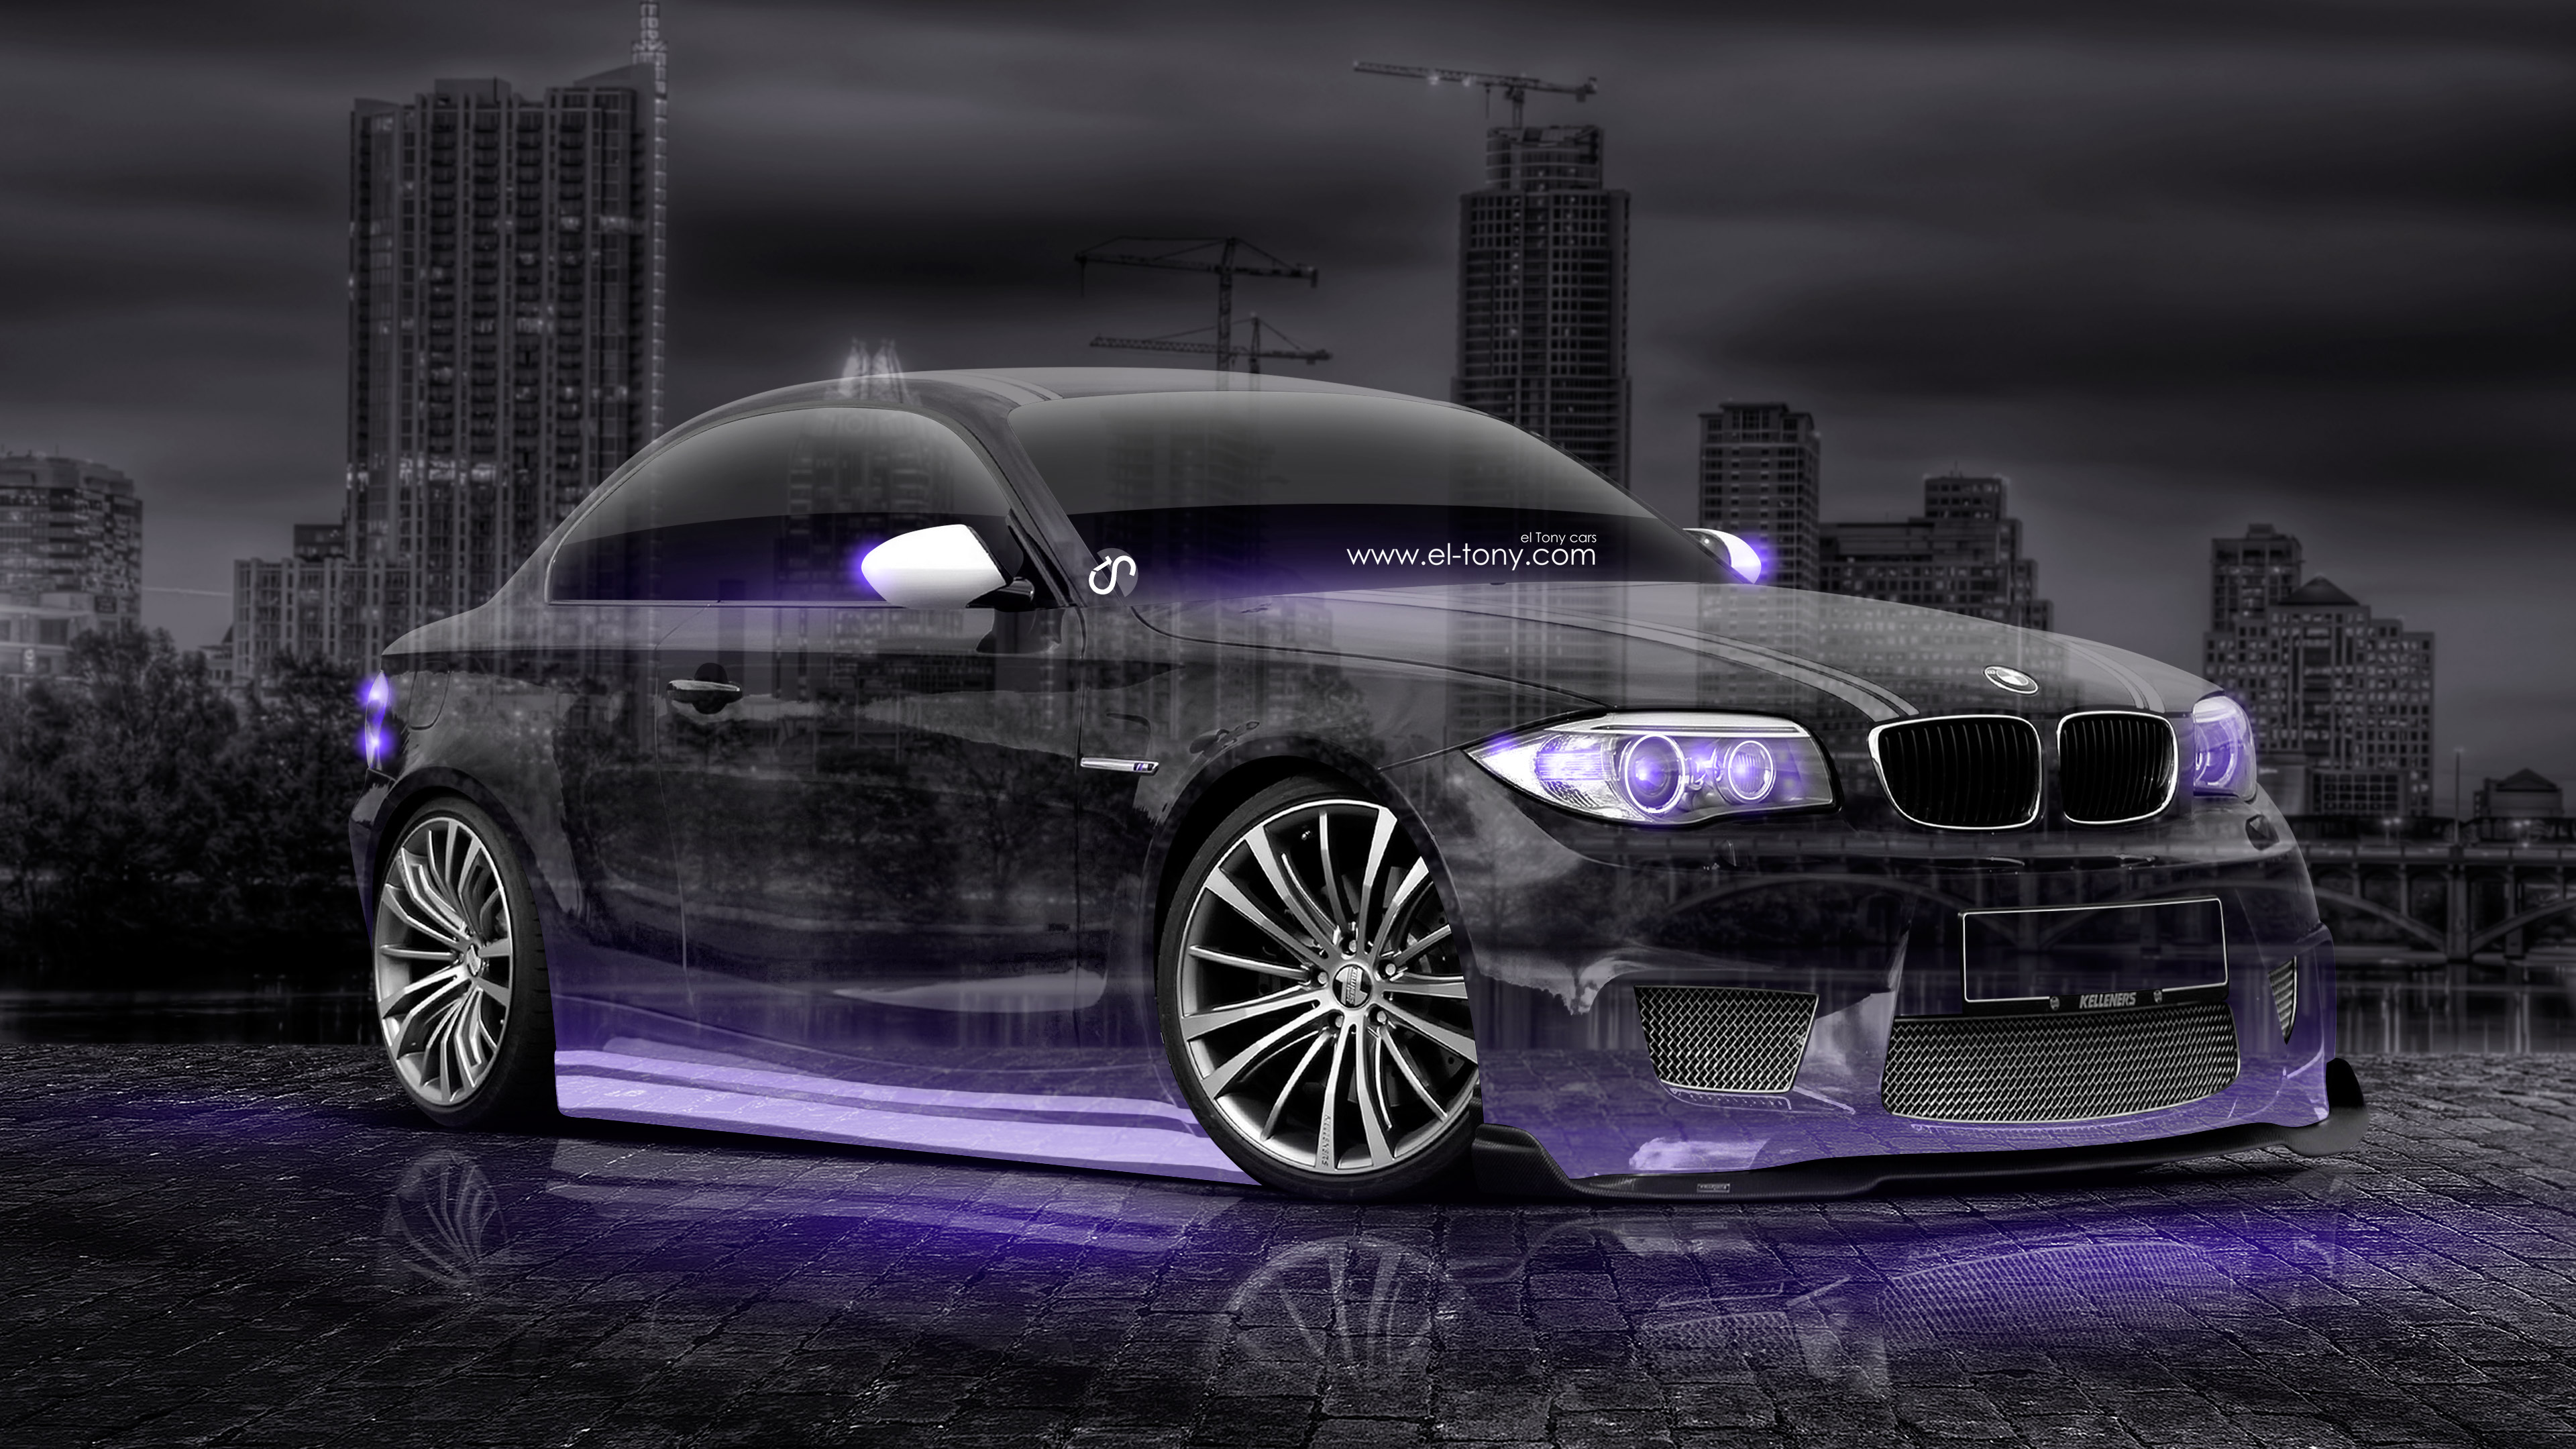 BMW M1 Tuning 3D Crystal City Night Car 2015 Fantasy Violet Neon ...